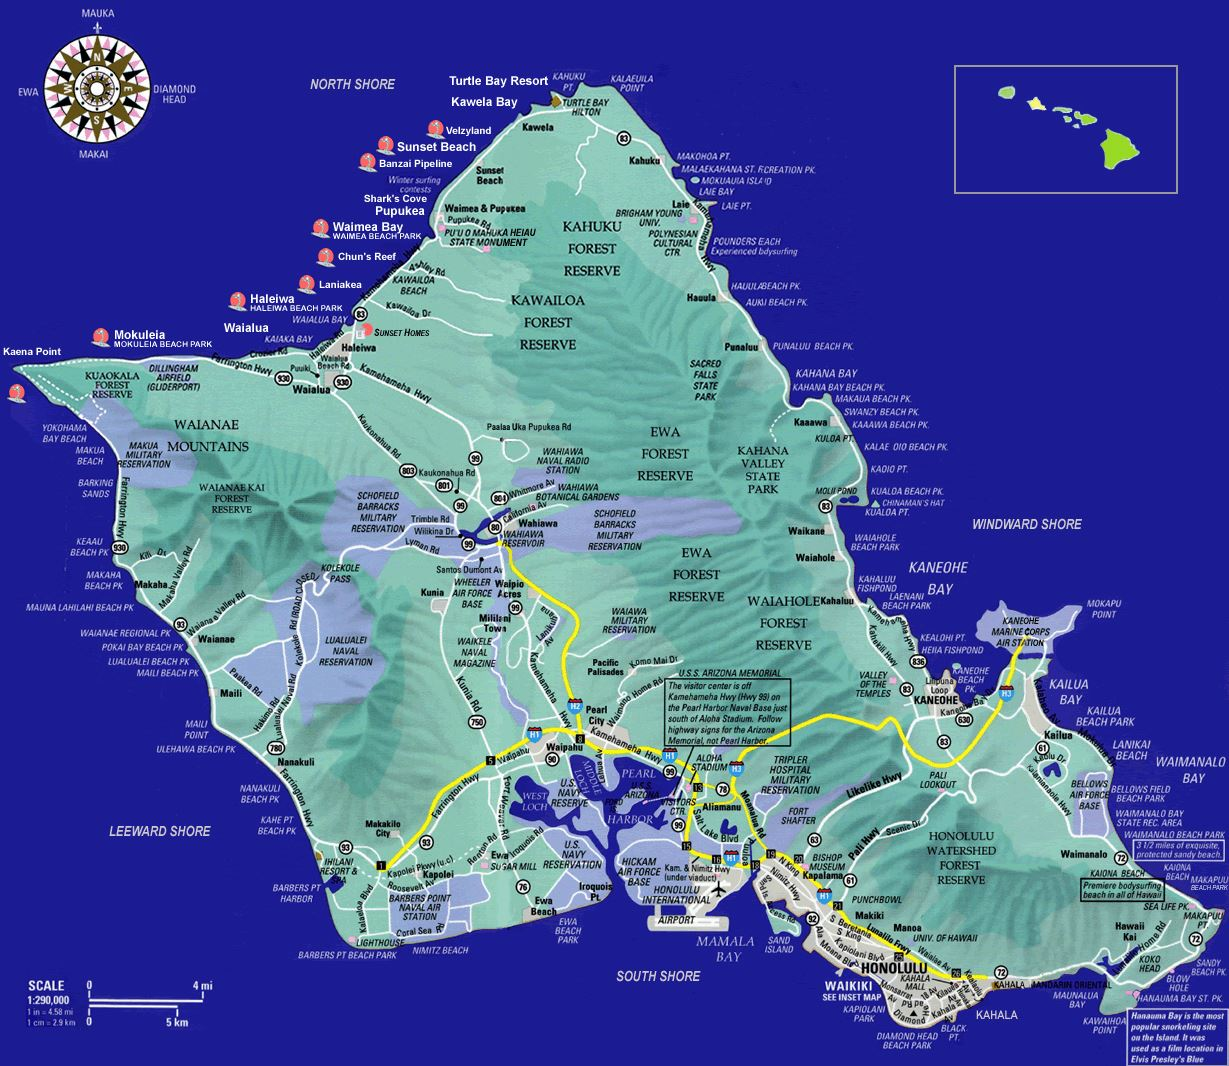 photograph regarding Oahu Map Printable called Higher Oahu Island Maps for No cost Obtain and Print Large